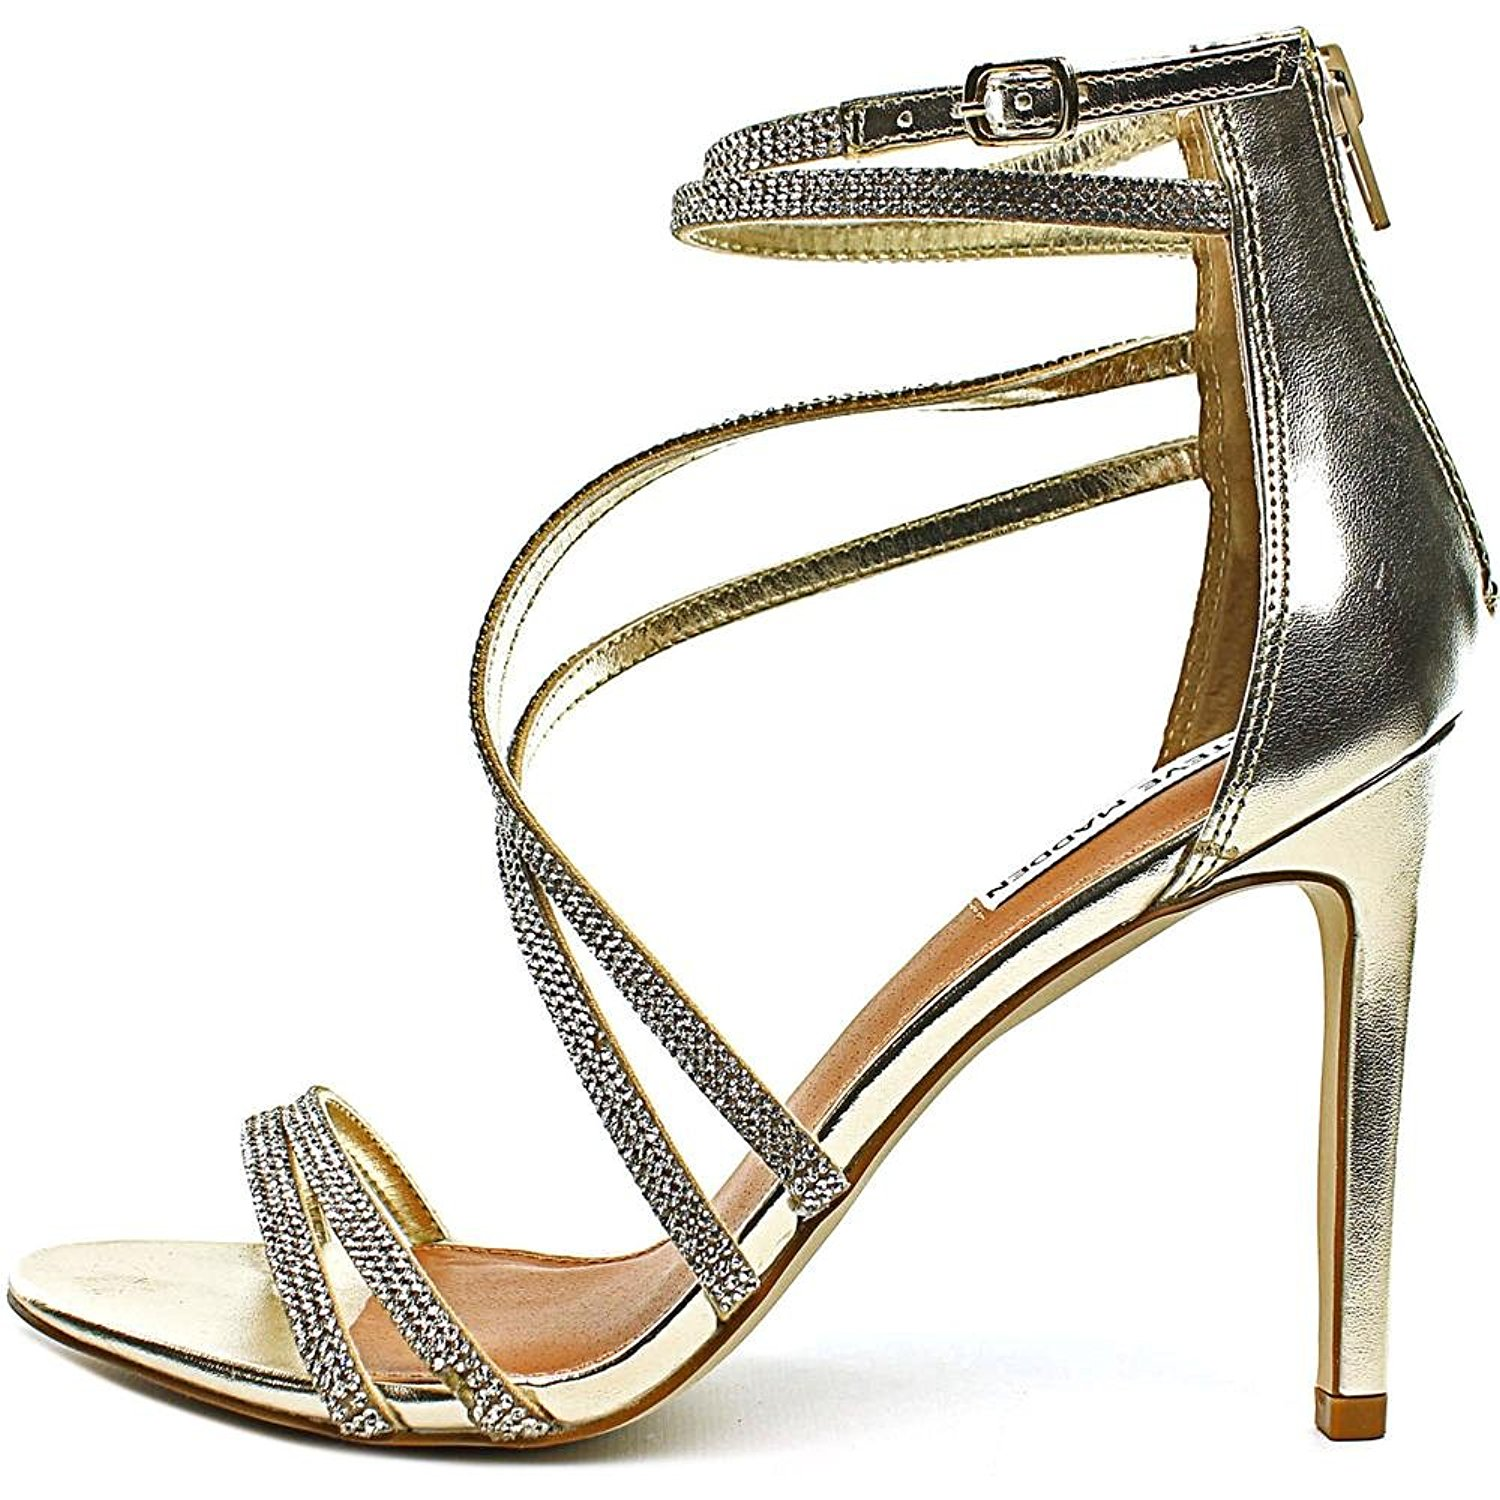 2963efeac0f Steve Madden Womens Open Toe Ankle Strap Classic Pumps